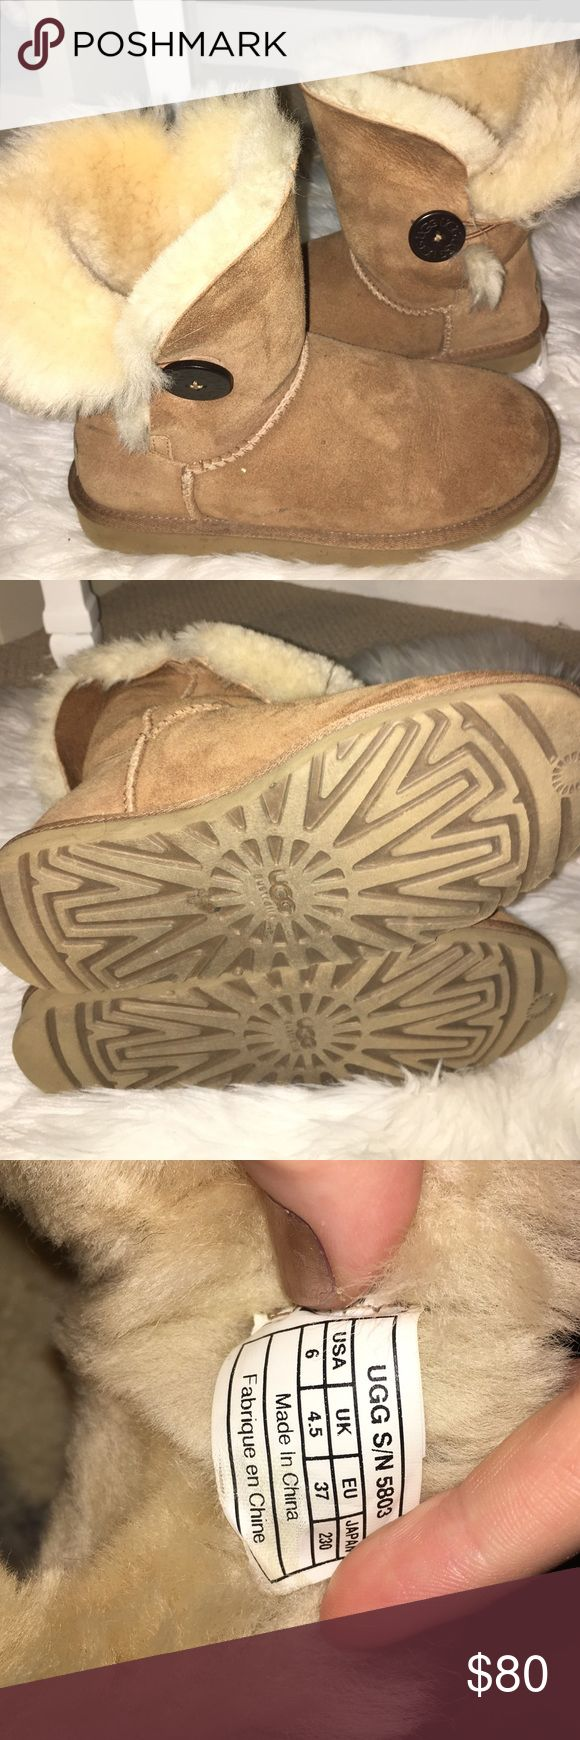 Bailey button uggs chestnut size 6! Chestnut Bailey button uggs in great condition! Only worn a handful of times! UGG Shoes Winter & Rain Boots